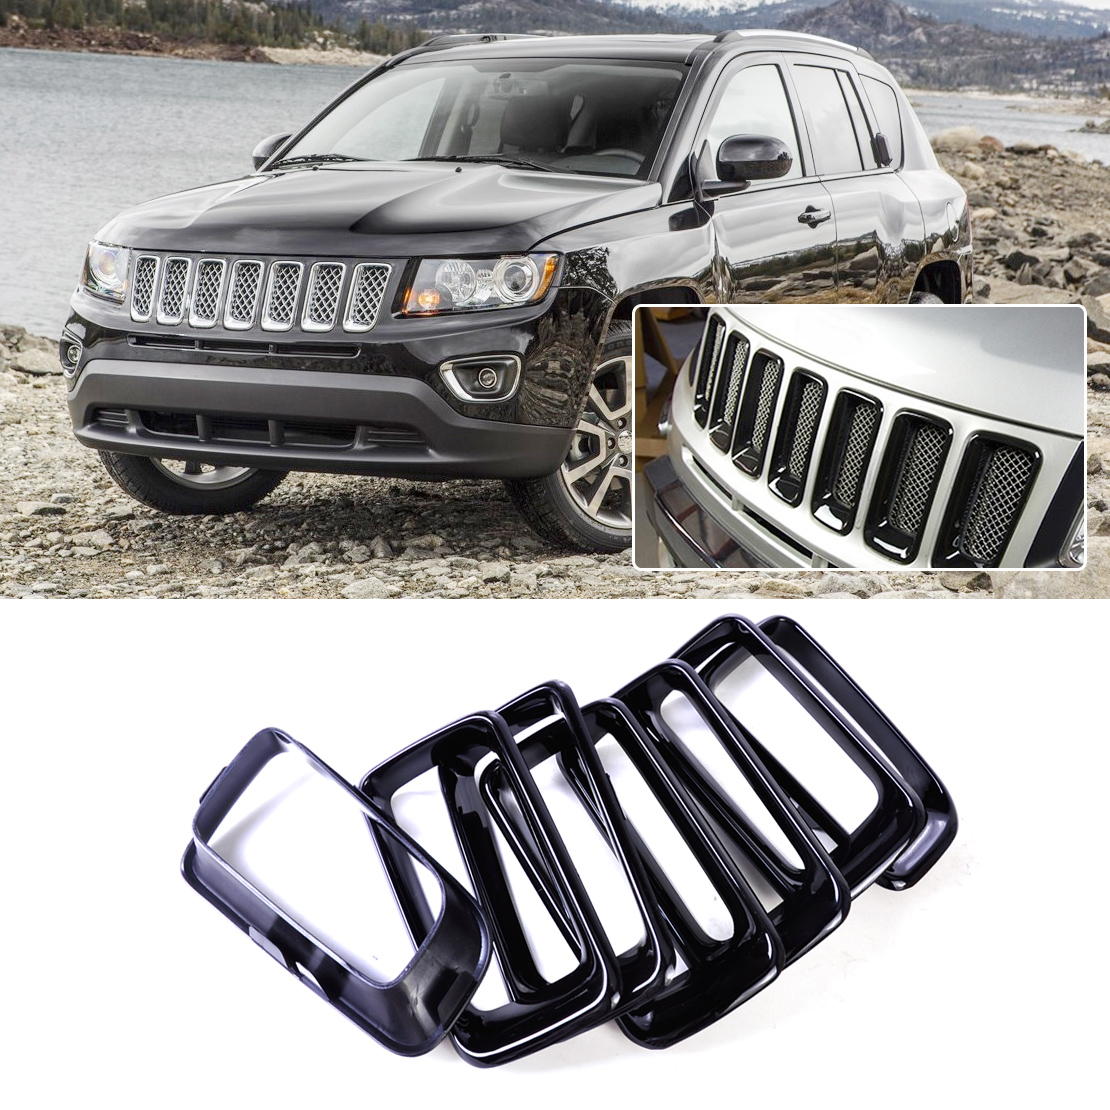 CITALL 7pcs ABS Front Grille Vent Hole Cover Trim Insert Frame Billet Vertical for Jeep Compass 2011 2012 2013 2014 2015 2016 high quality chrome front head light eyelid cover trim for compass 2011 2014